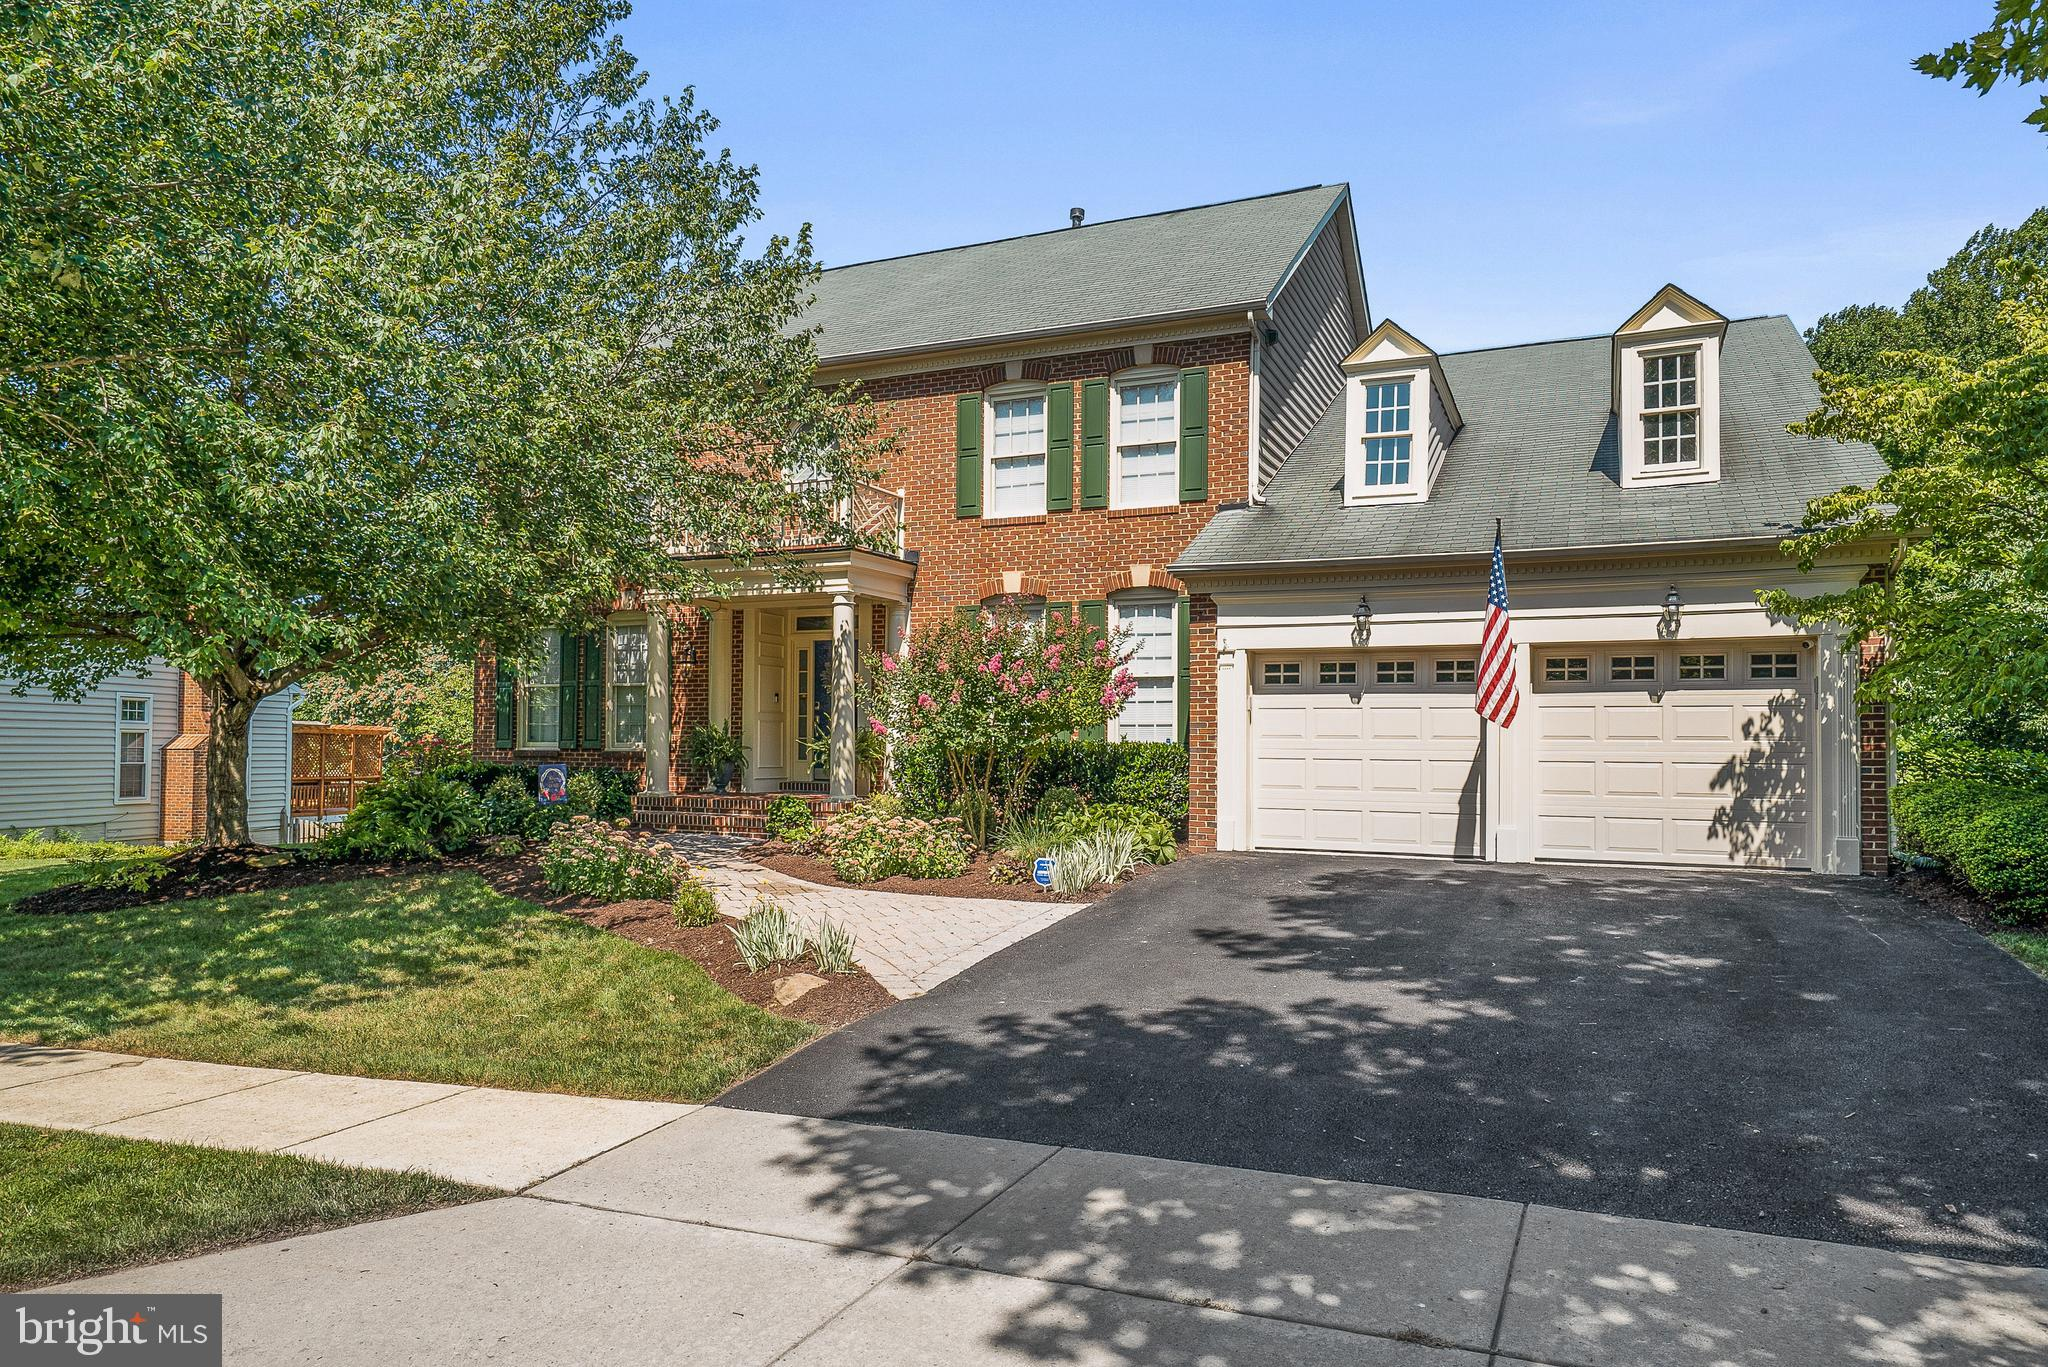 21521 FOX FIELD CIRCLE, GERMANTOWN, MD 20876